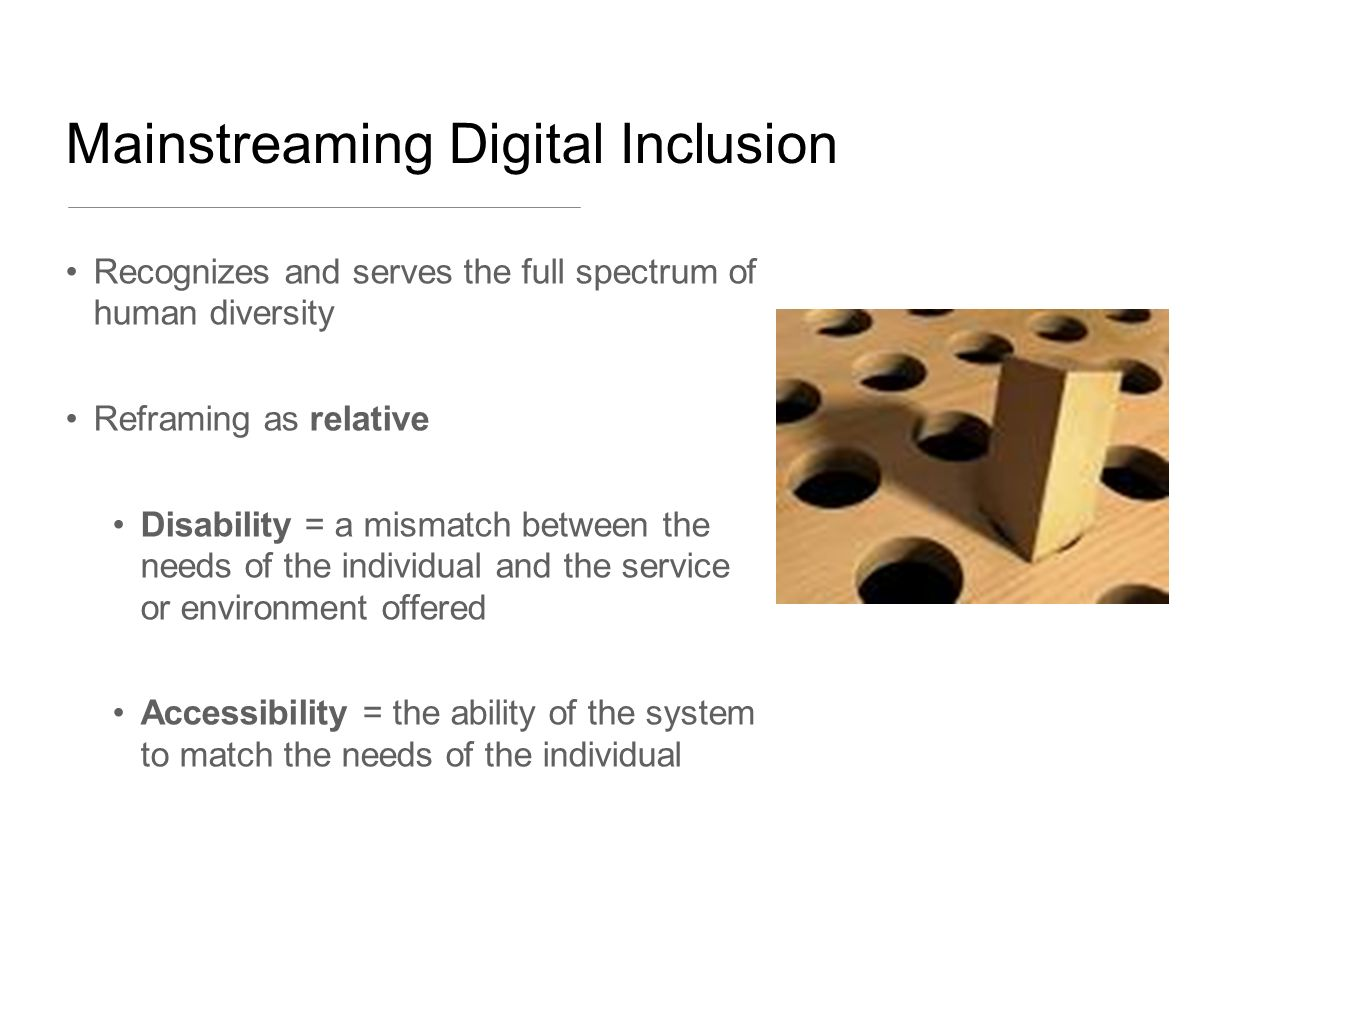 Mainstreaming Digital Inclusion Recognizes and serves the full spectrum of human diversity Reframing as relative Disability = a mismatch between the needs of the individual and the service or environment offered Accessibility = the ability of the system to match the needs of the individual